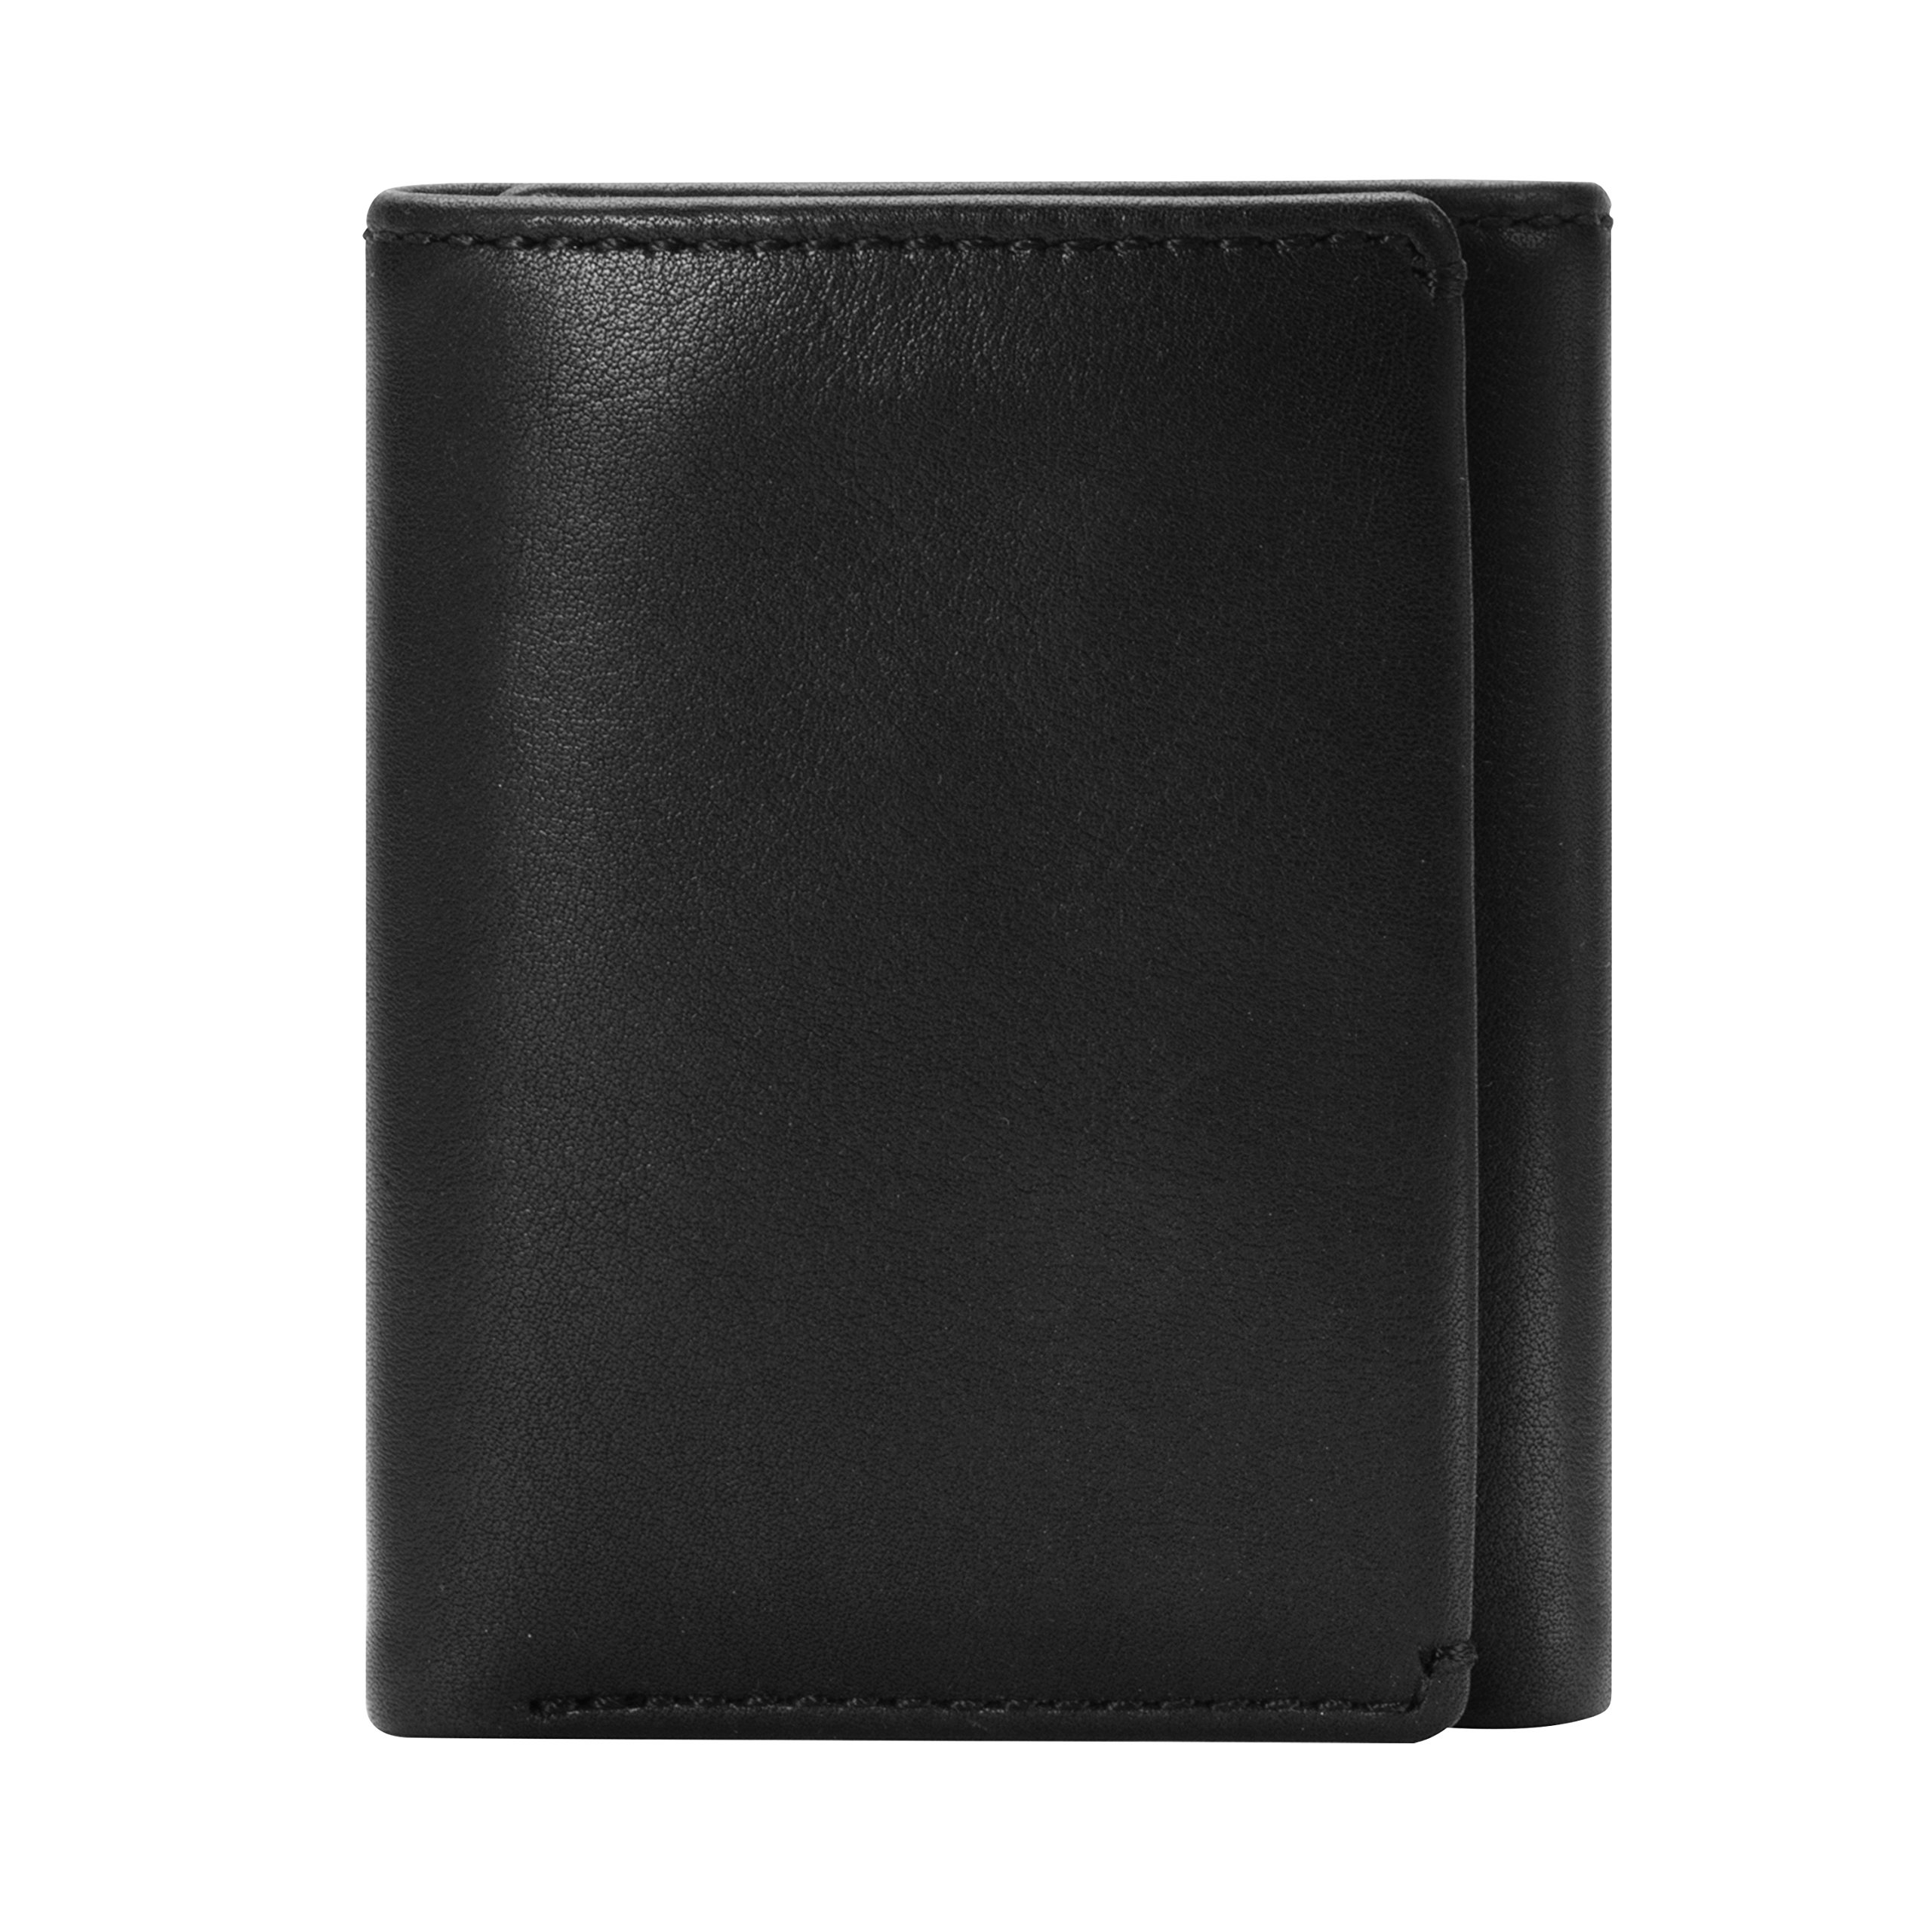 HOJ Co. Eastwood Nappa TRIFOLD Wallet-Men's Leather Trifold Wallet-Divided Bill Compartment & ID Window